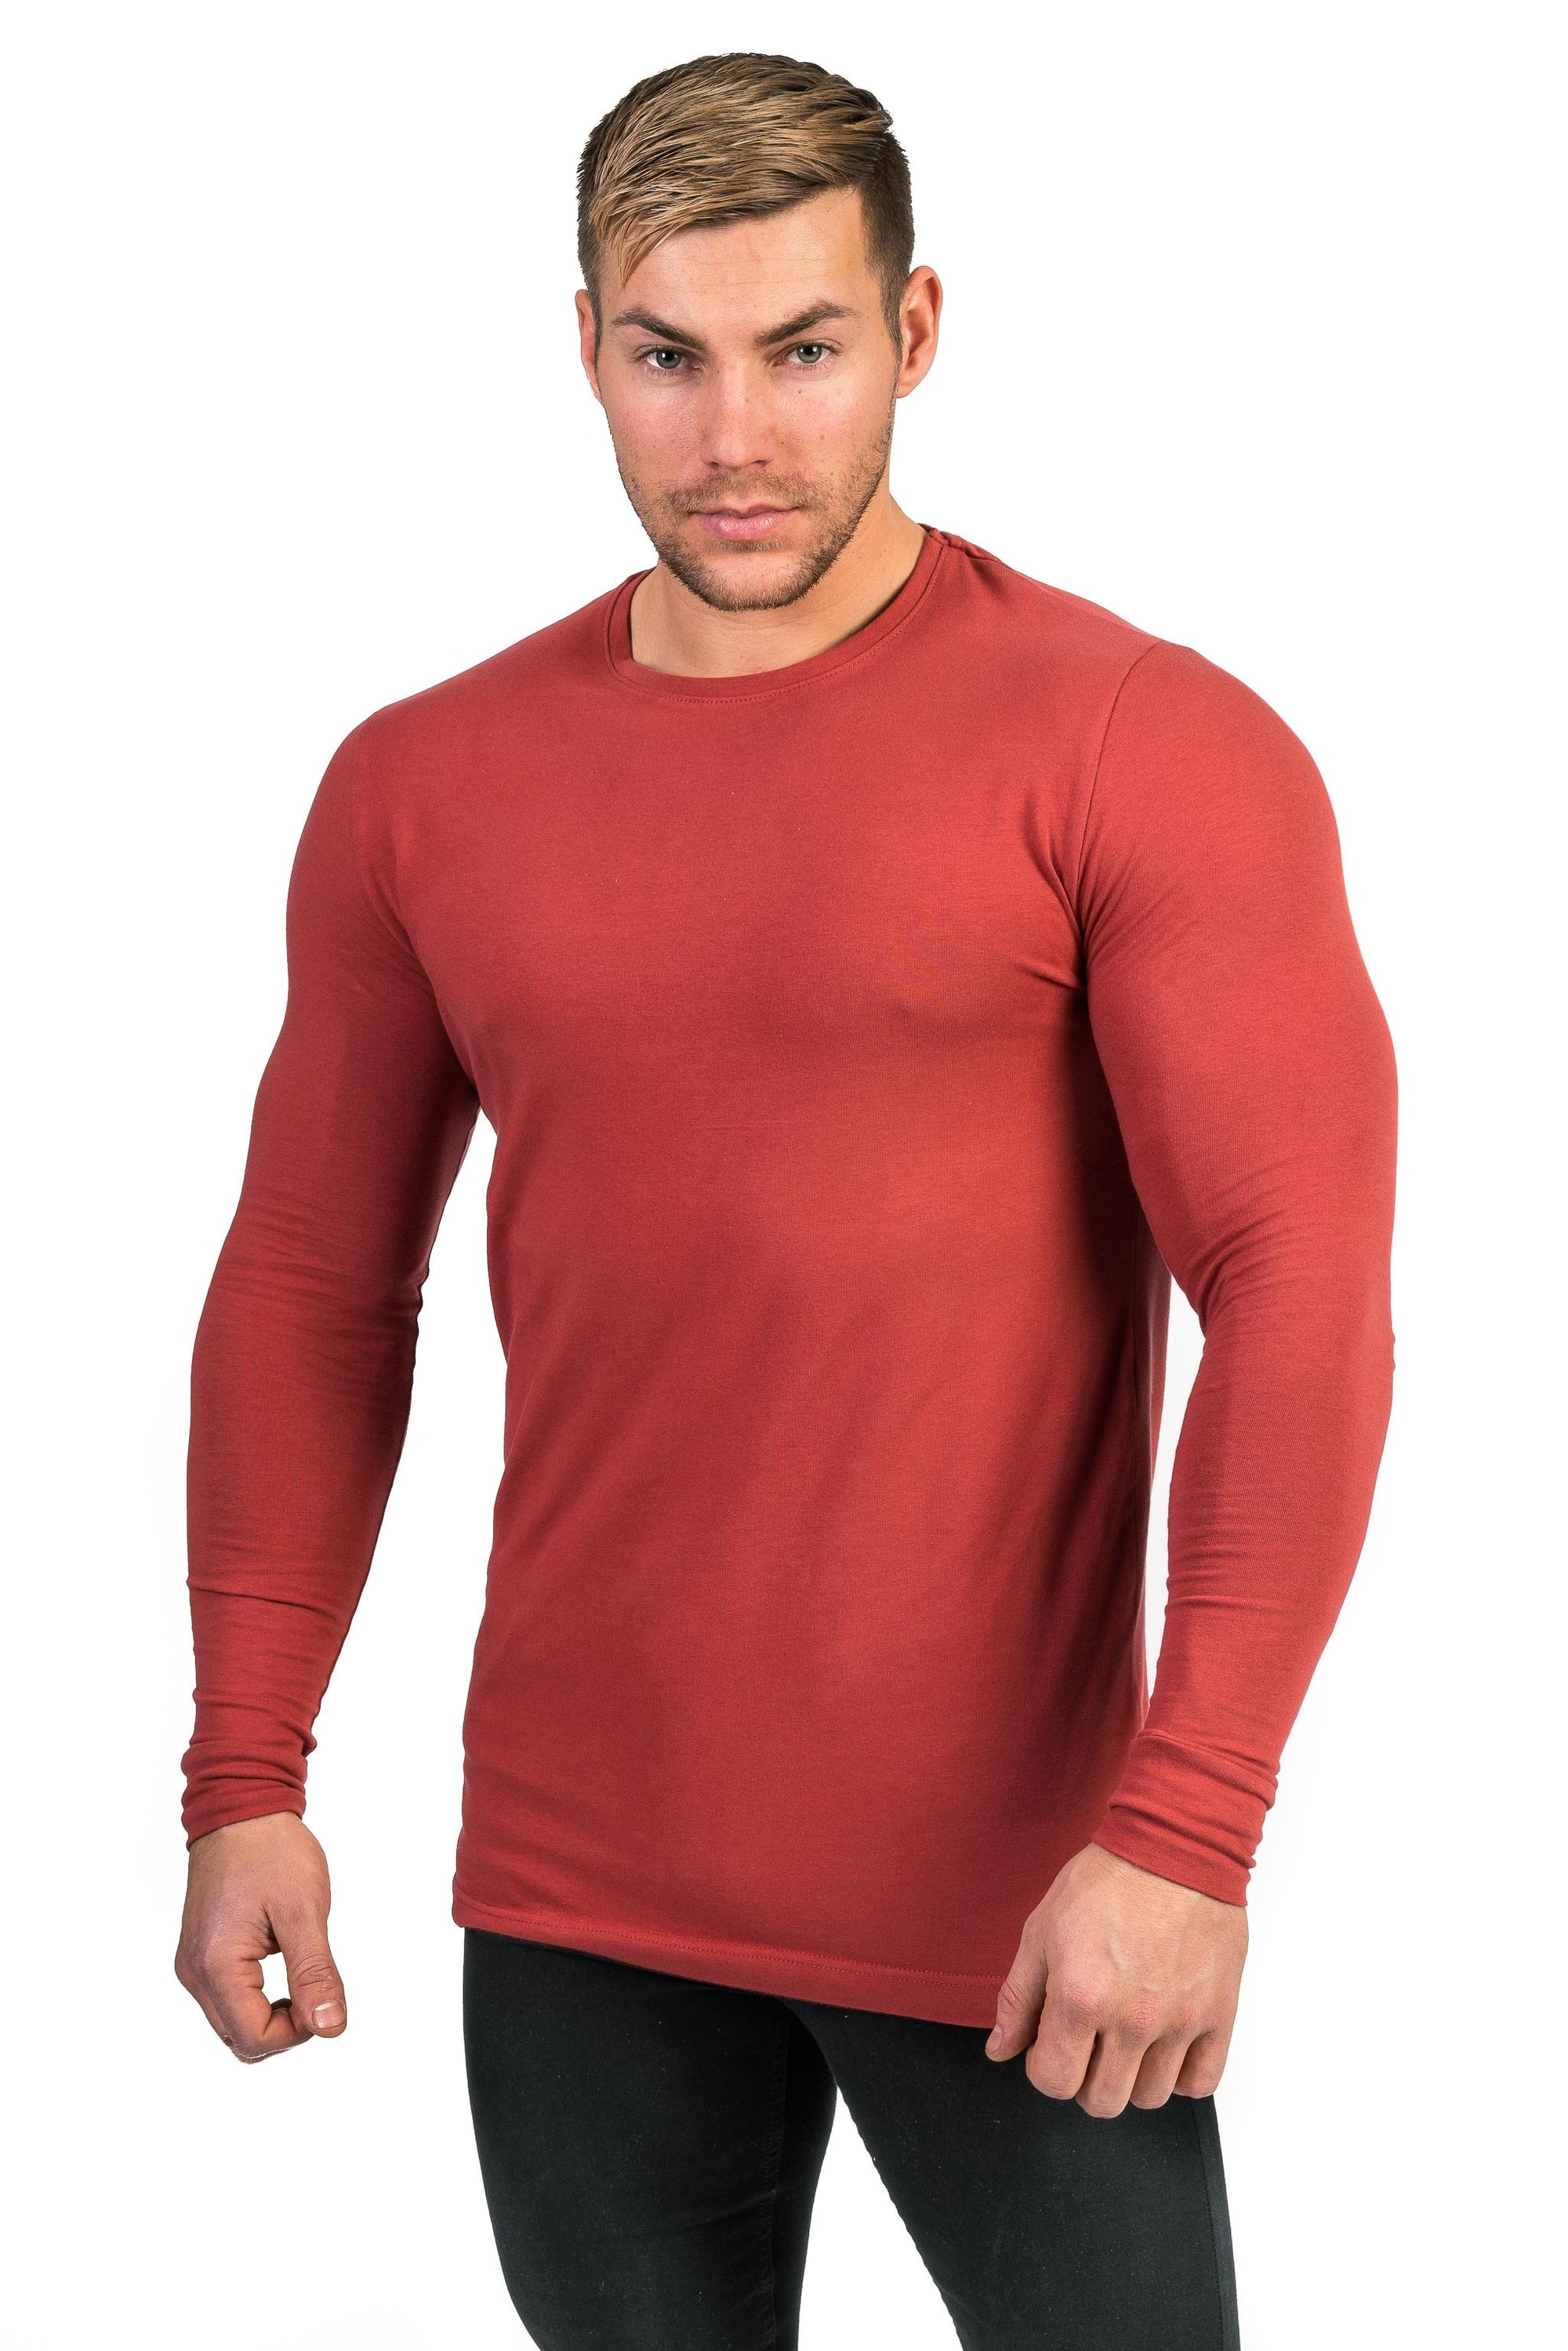 Mens Long Sleeve T Shirt - Pastel Port